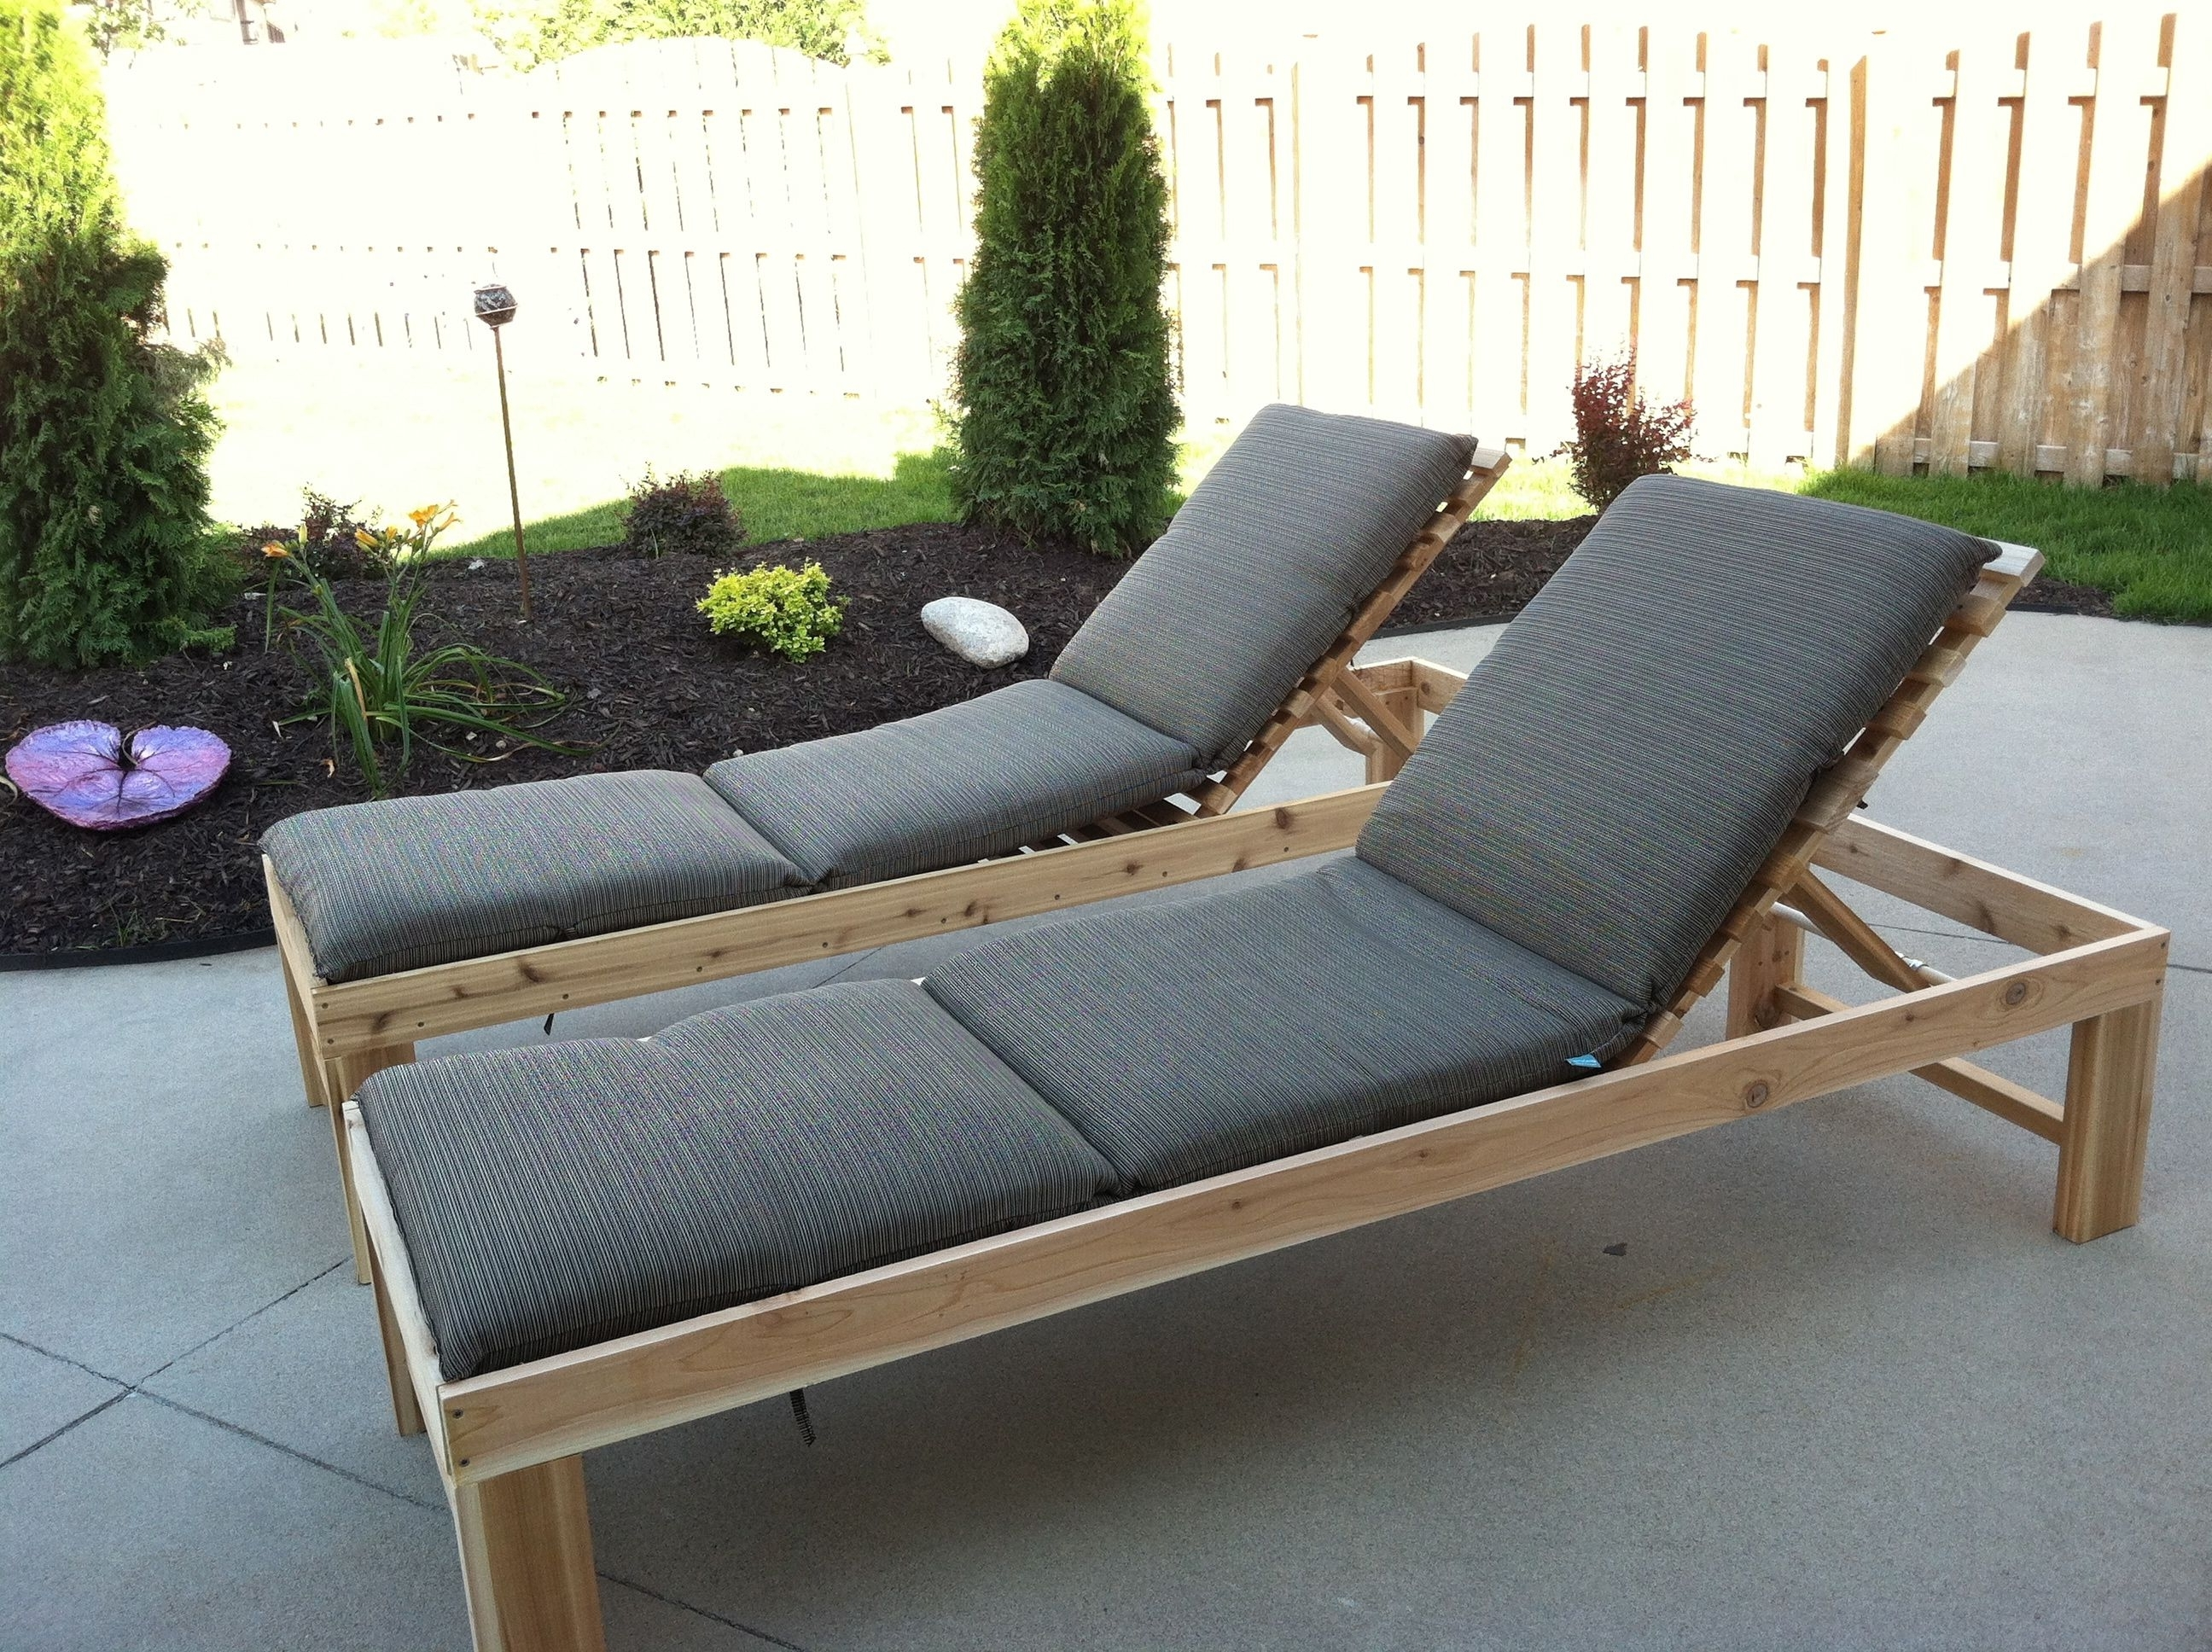 Outdoor Chaise Lounge – Diy Projects Within Latest Outdoor Lounge Chaises (View 3 of 15)